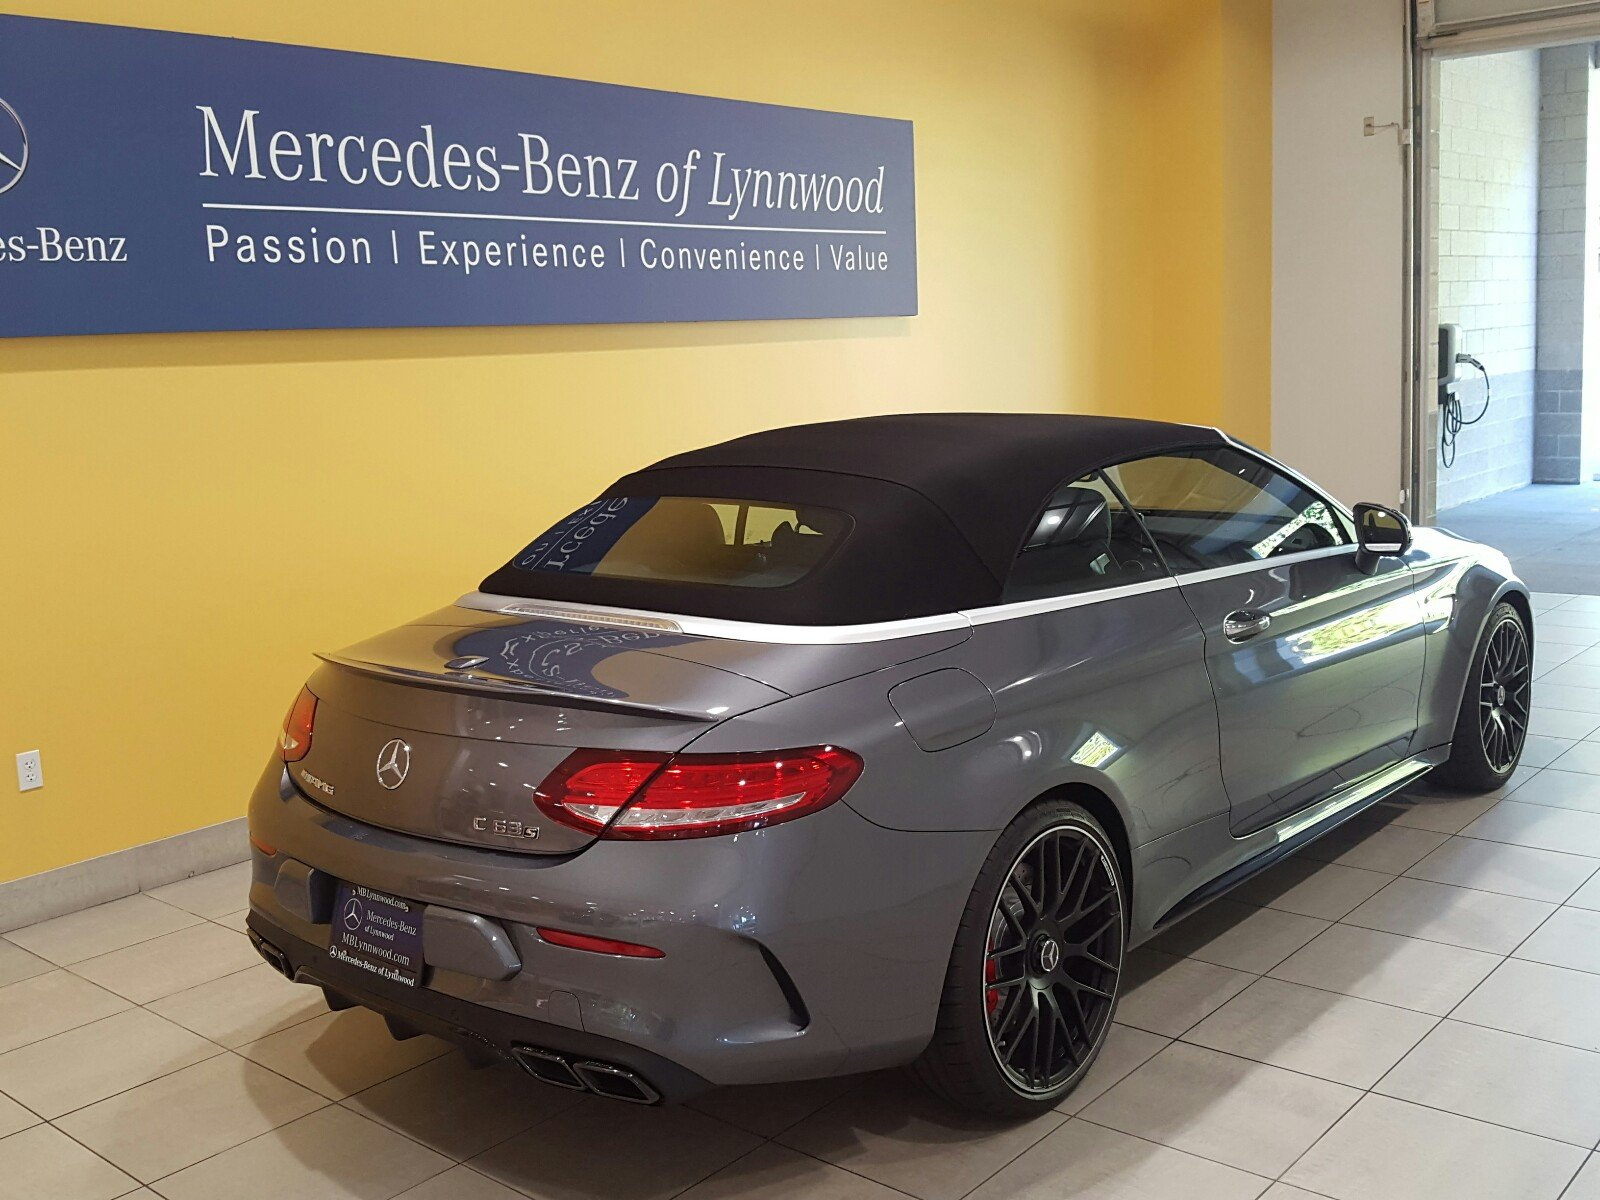 new 2018 mercedes benz c class amg c 63 s cabriolet cabriolet in lynnwood 28068 mercedes. Black Bedroom Furniture Sets. Home Design Ideas